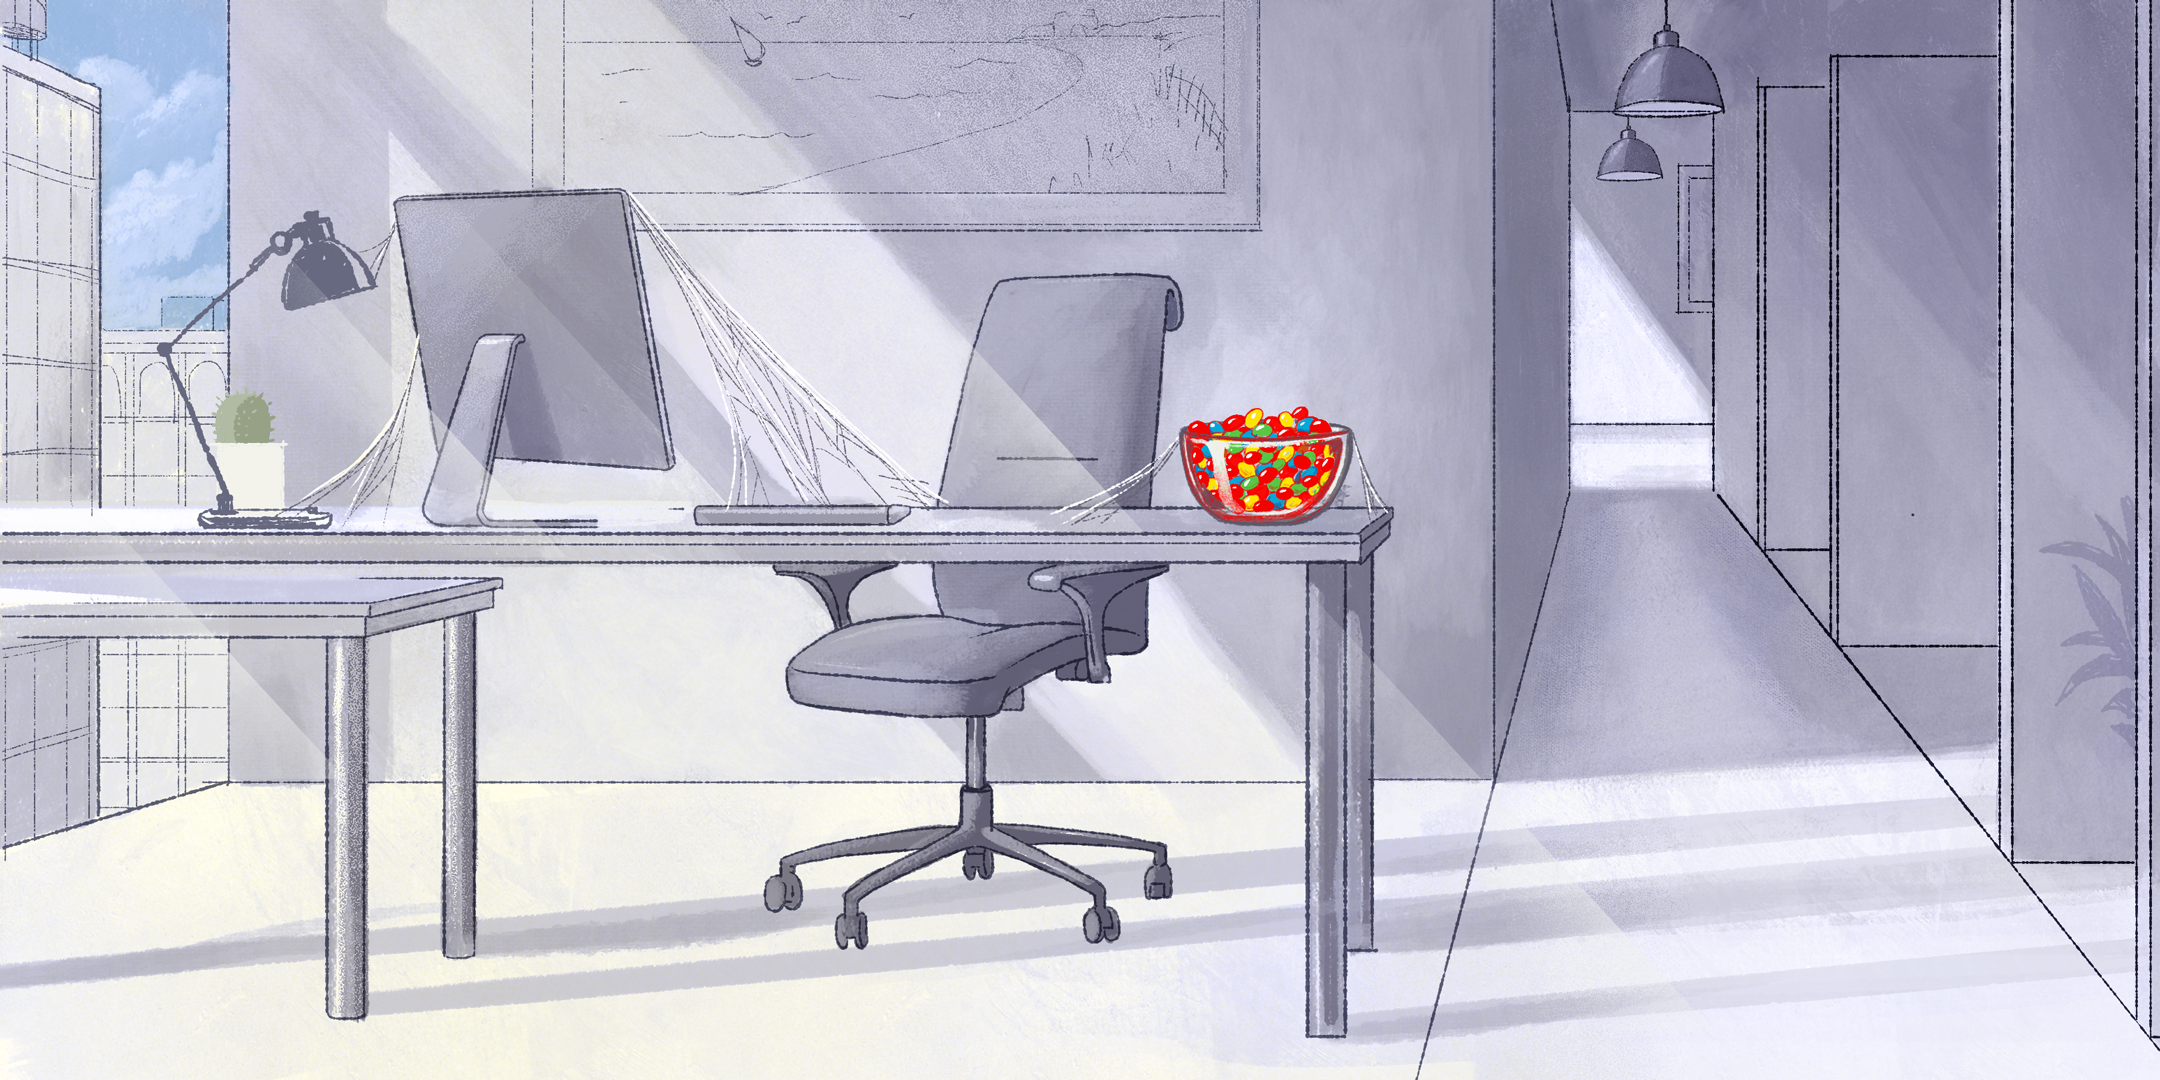 Empty office setting in monochrome grey with a bright, colorful bowl of candy spotlighted on top of a desk.